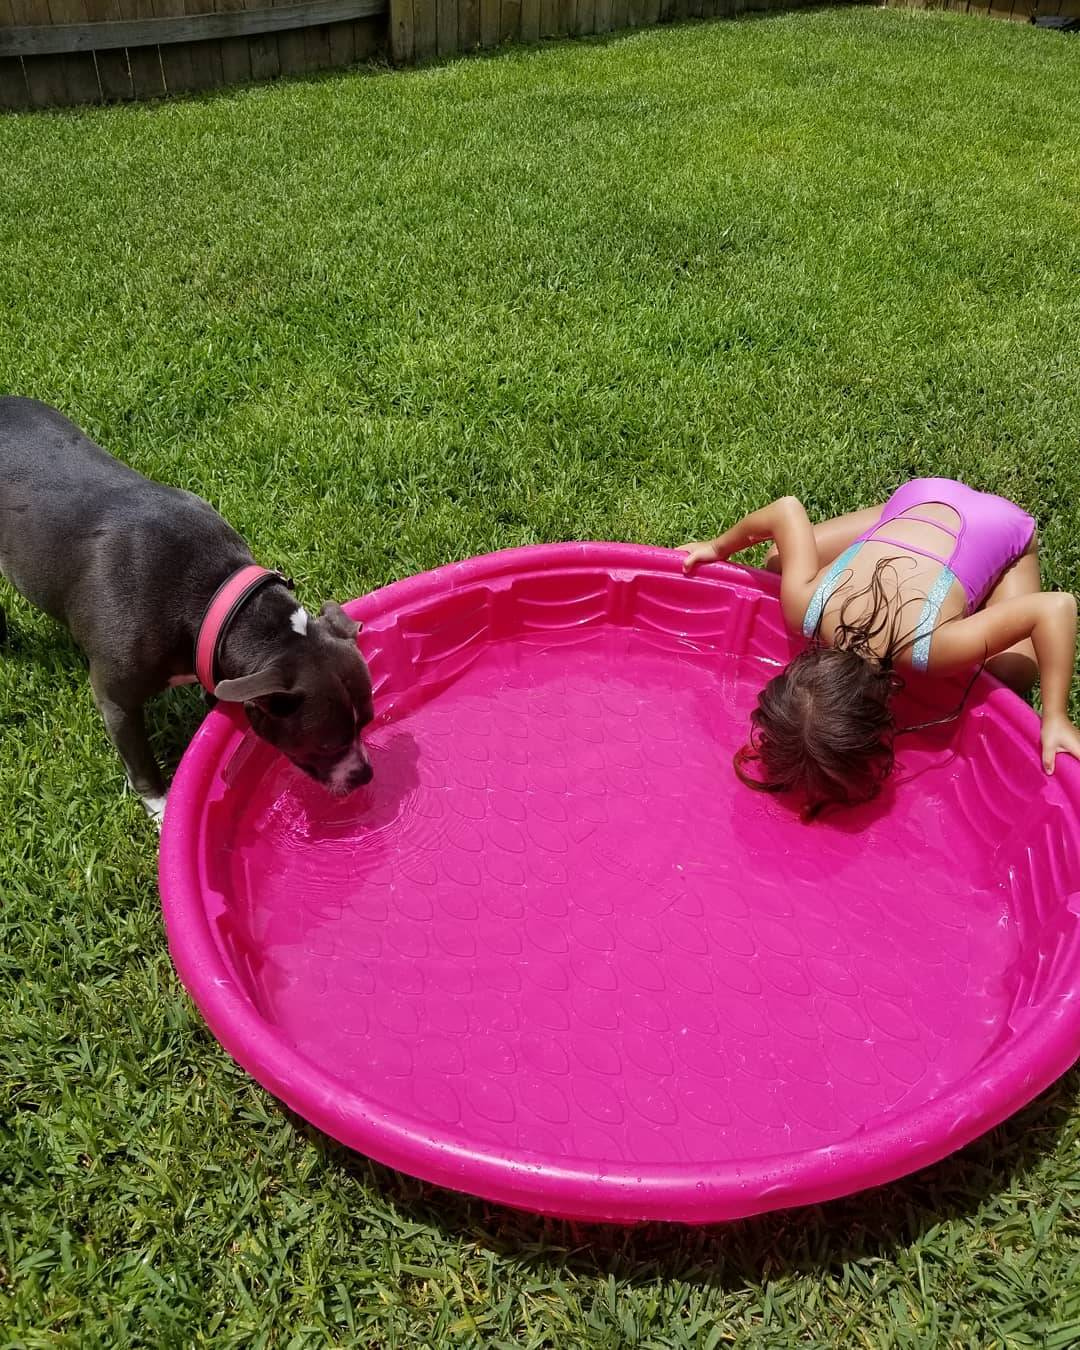 kid drinking from a dog pool